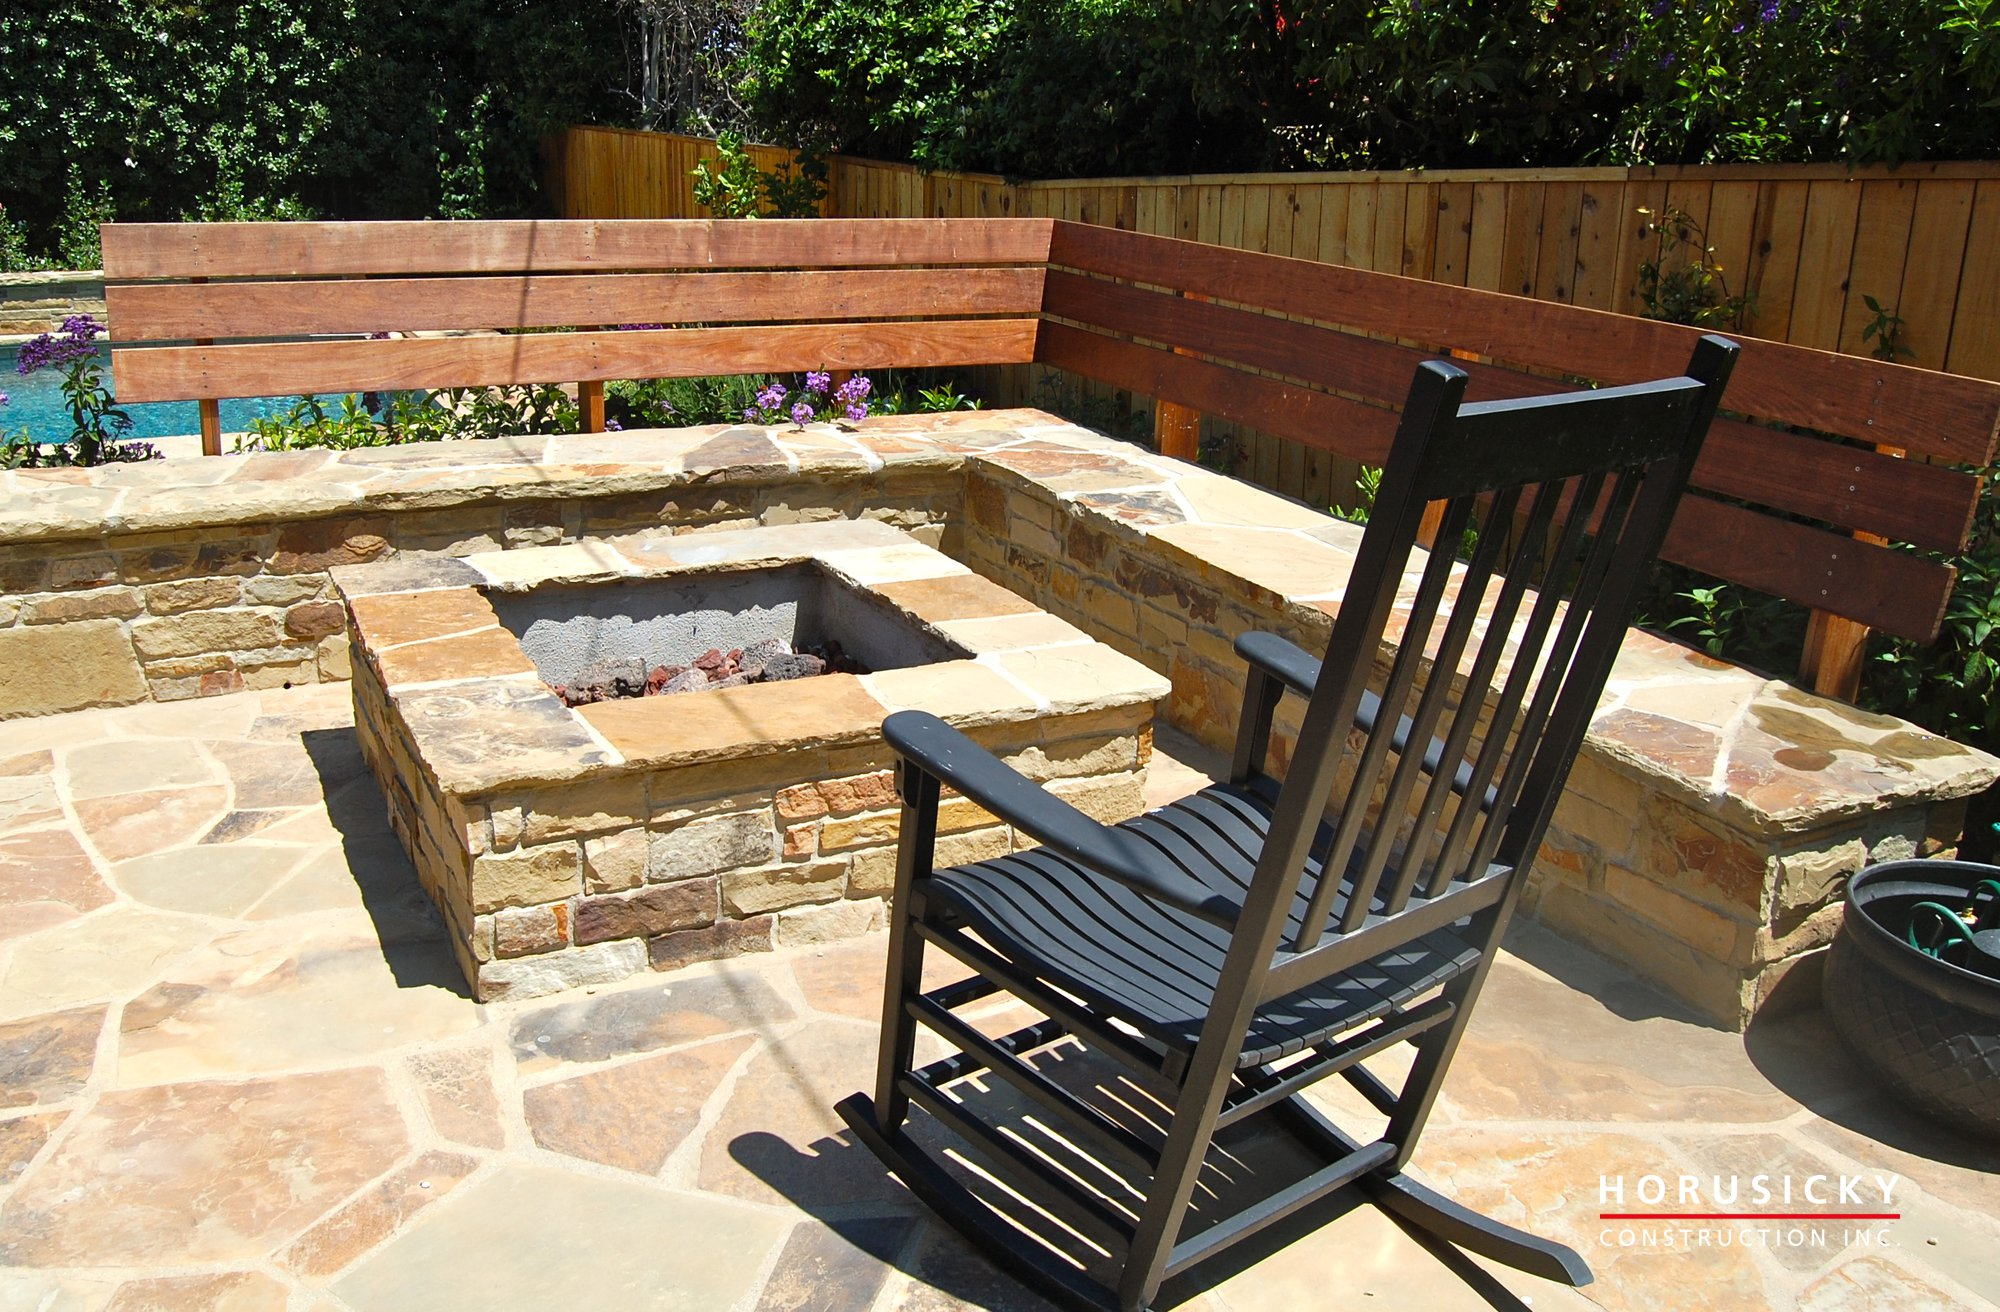 Fireplaces & Firepits - Horusicky Construction